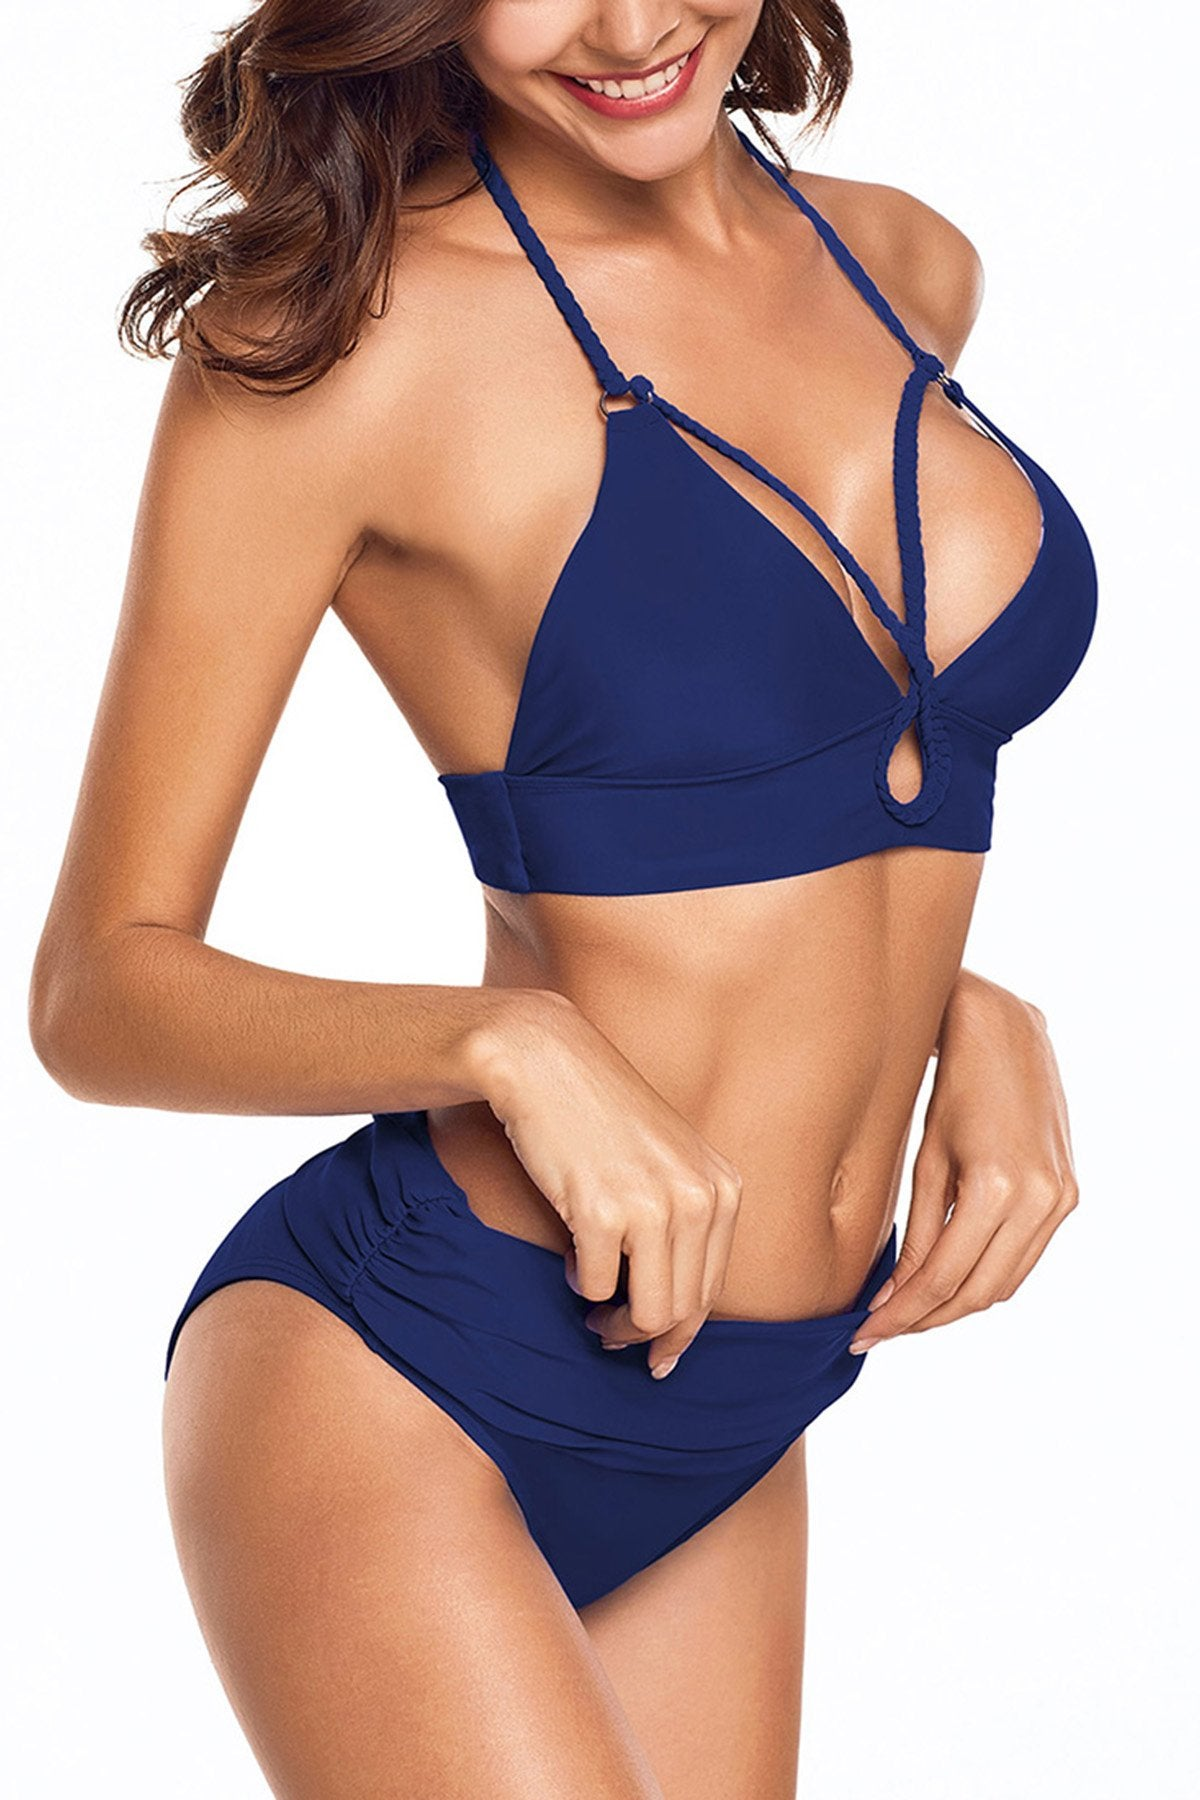 Navy Blue Braided Halter Bikini 2pcs Swimsuit